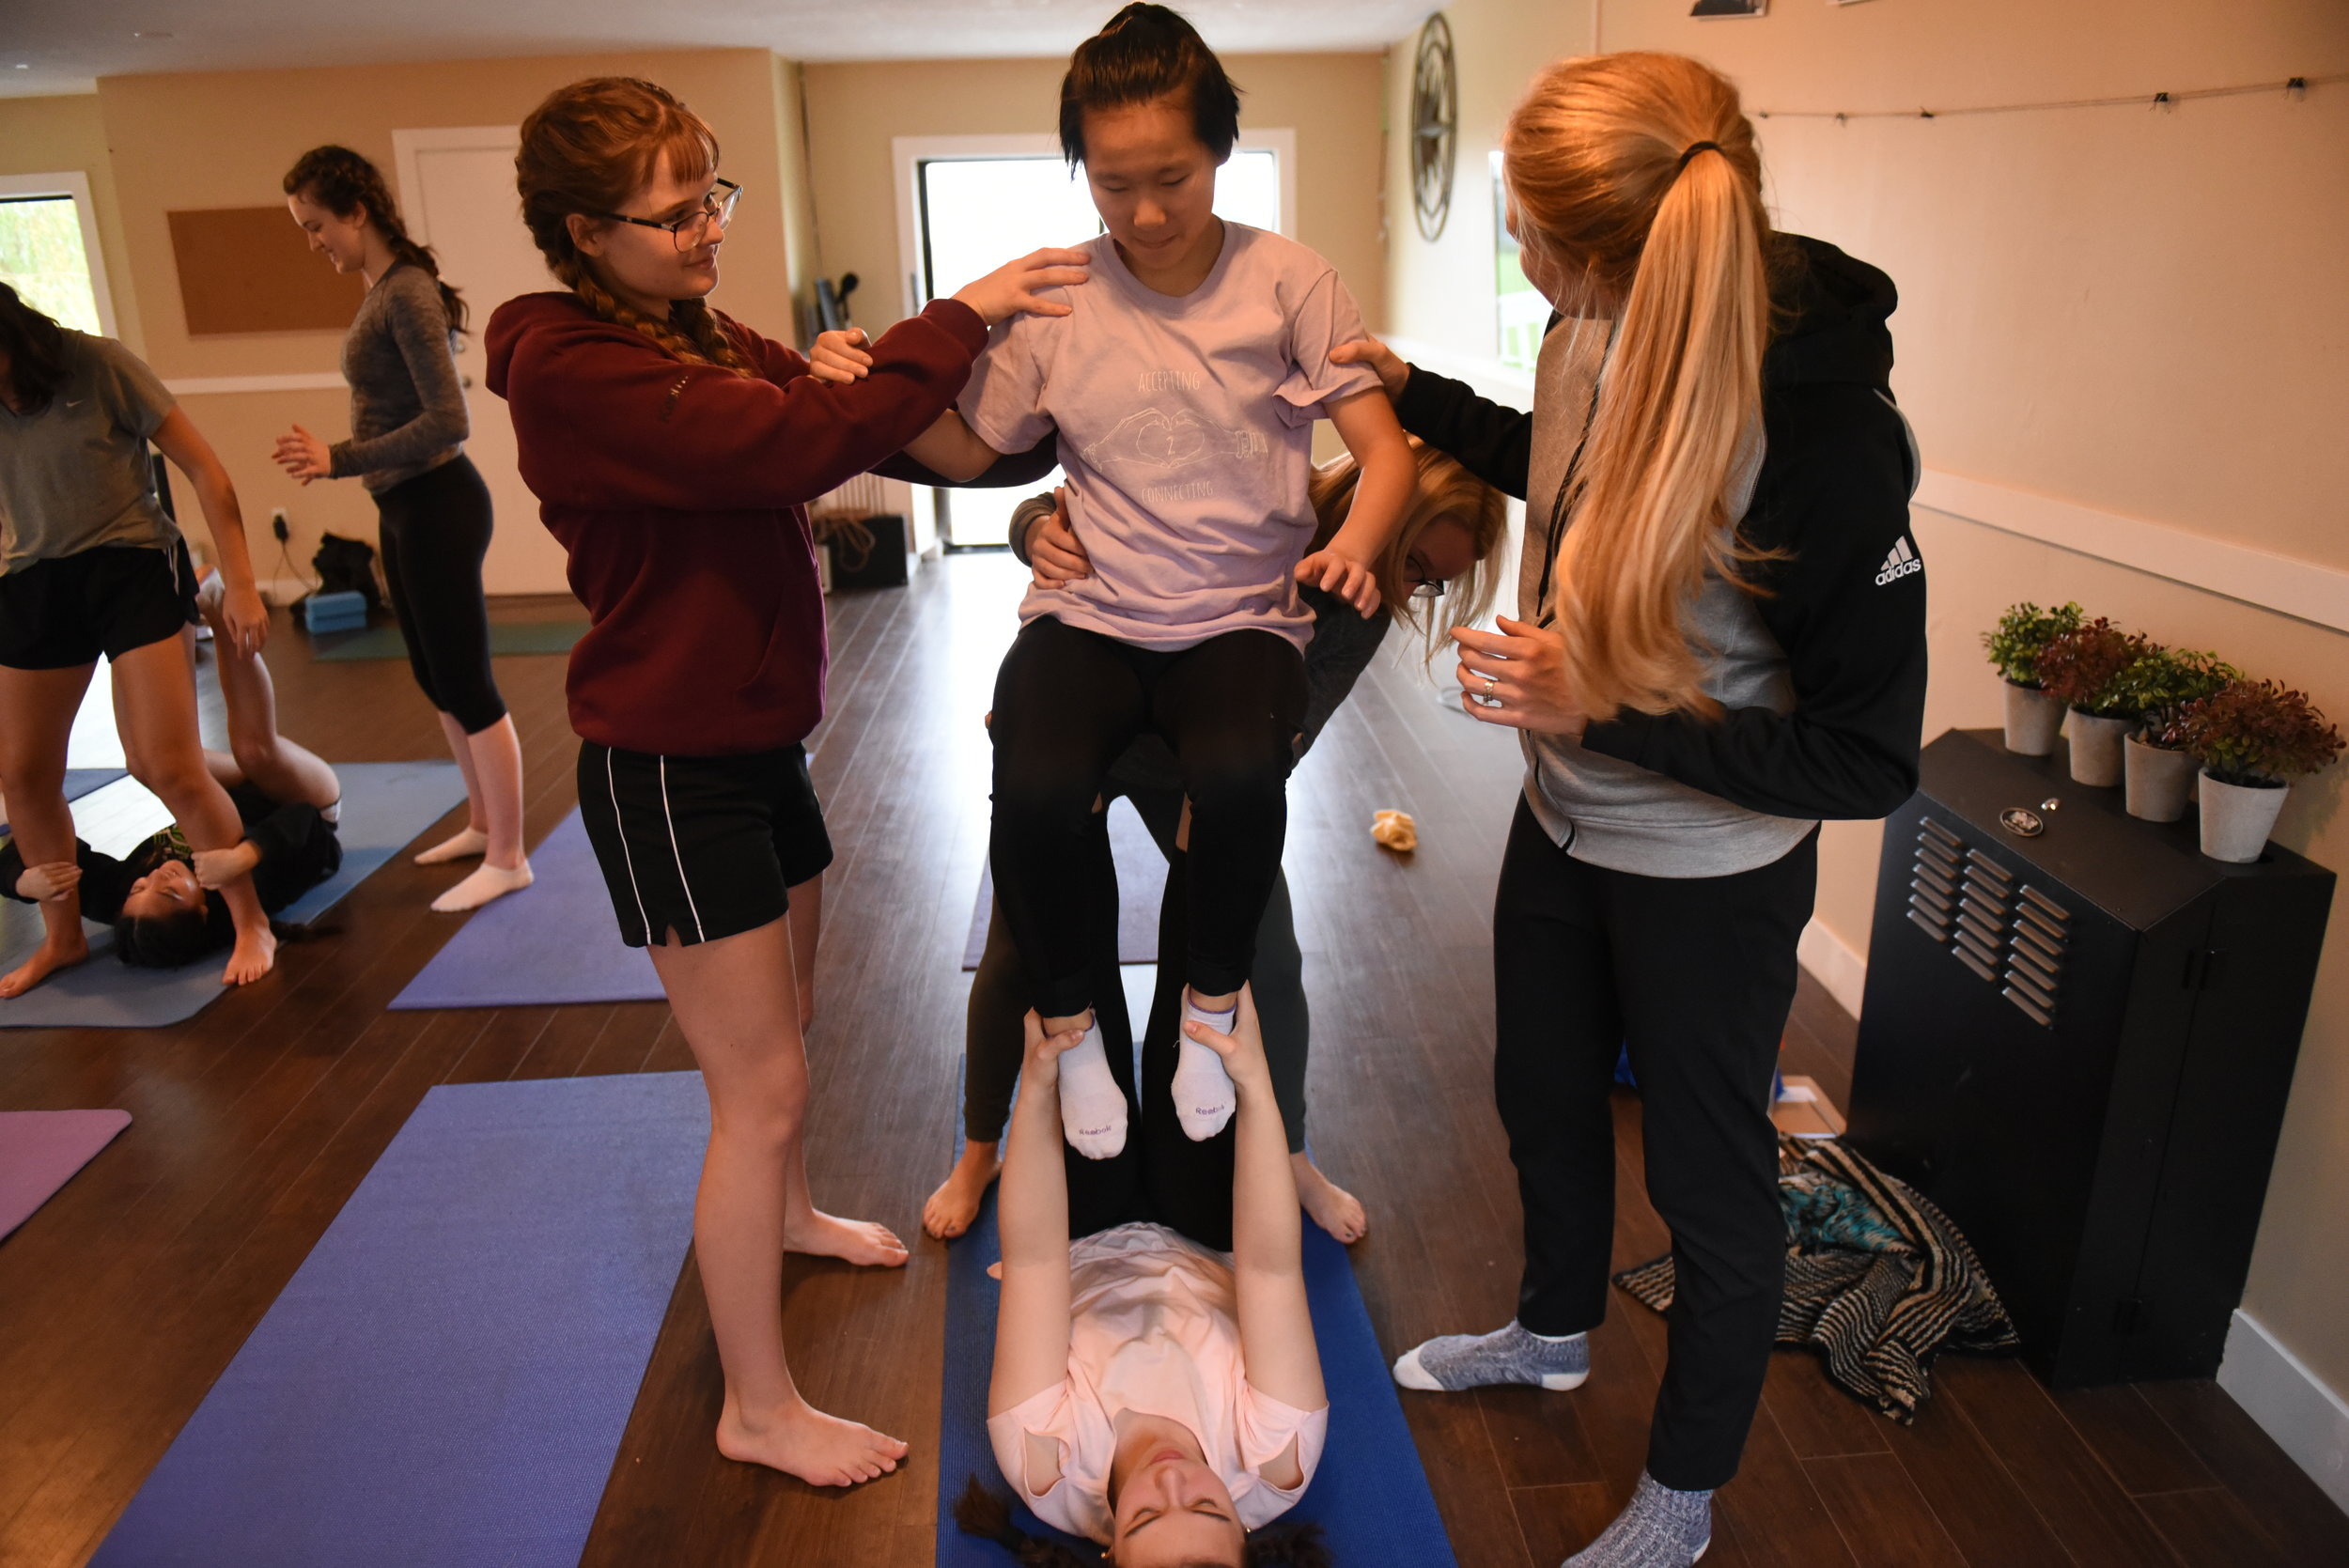 Mandy Rosts supports a student as she tries Acro Yoga for the first time, led by Katie Thacker